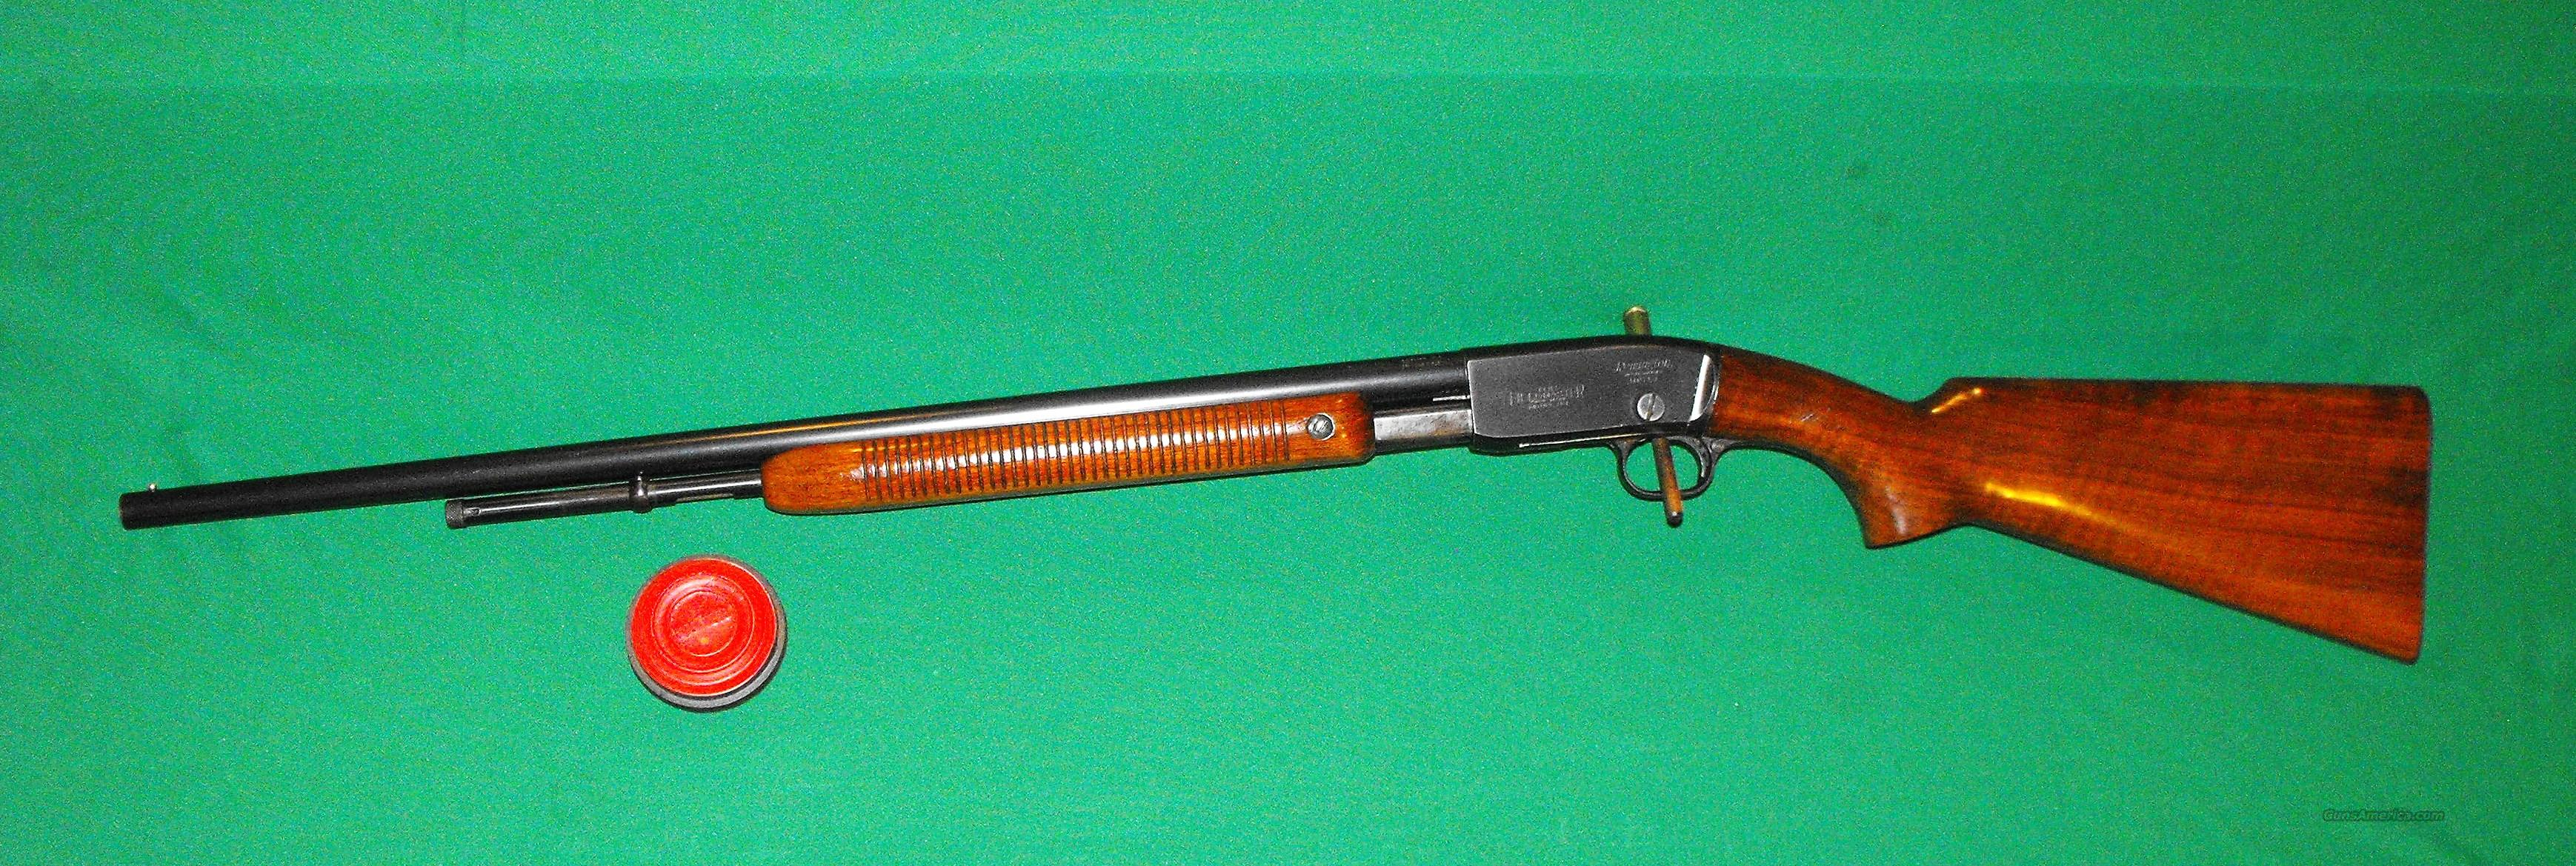 Remington Model 121-SB Rifle  Guns > Rifles > Remington Rifles - Modern > .22 Rimfire Models